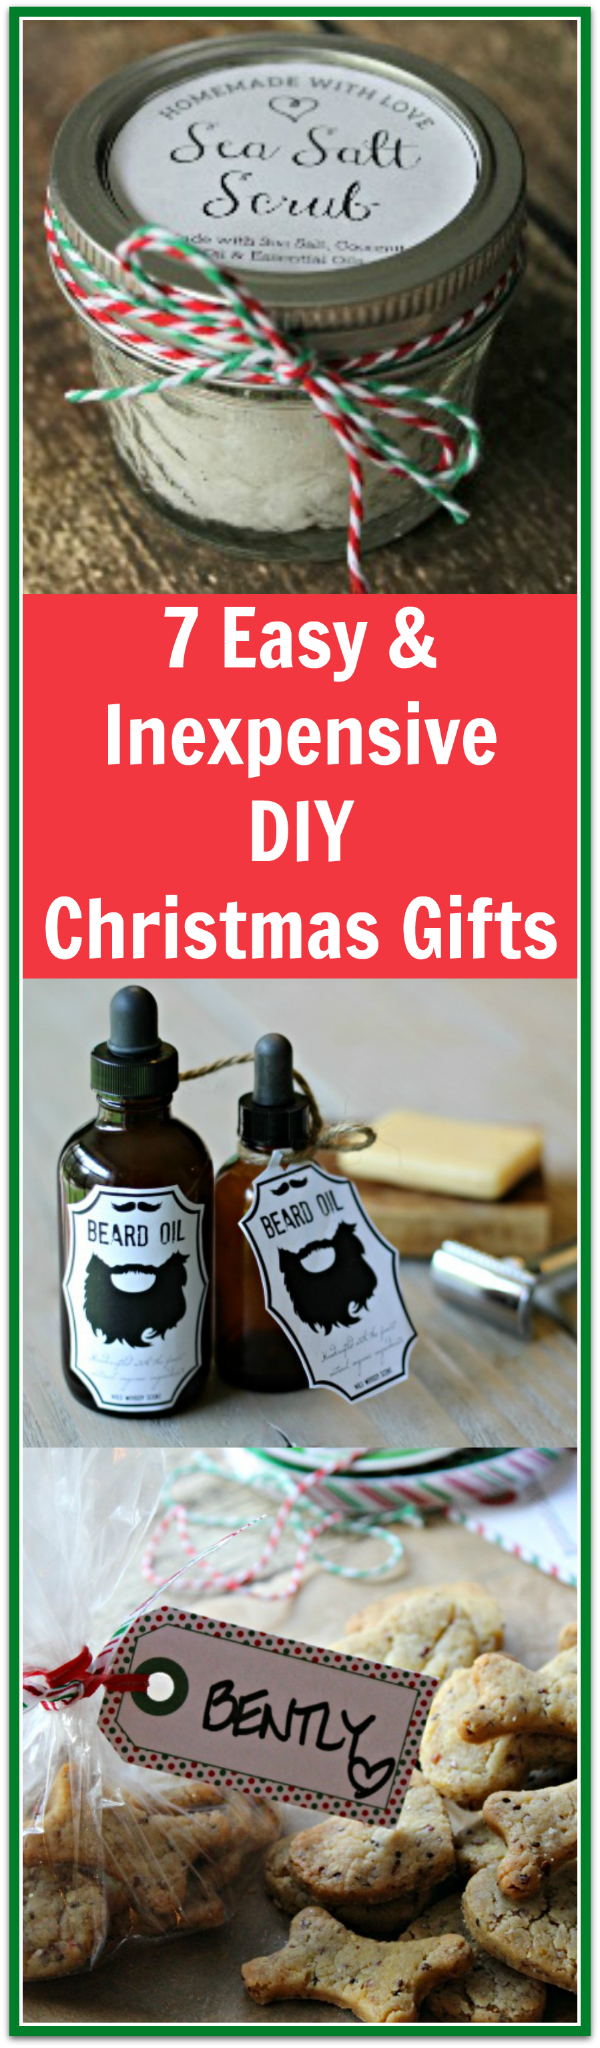 I love these simple but really nice diy christmas gifts and ideas! There's even free printable labels!